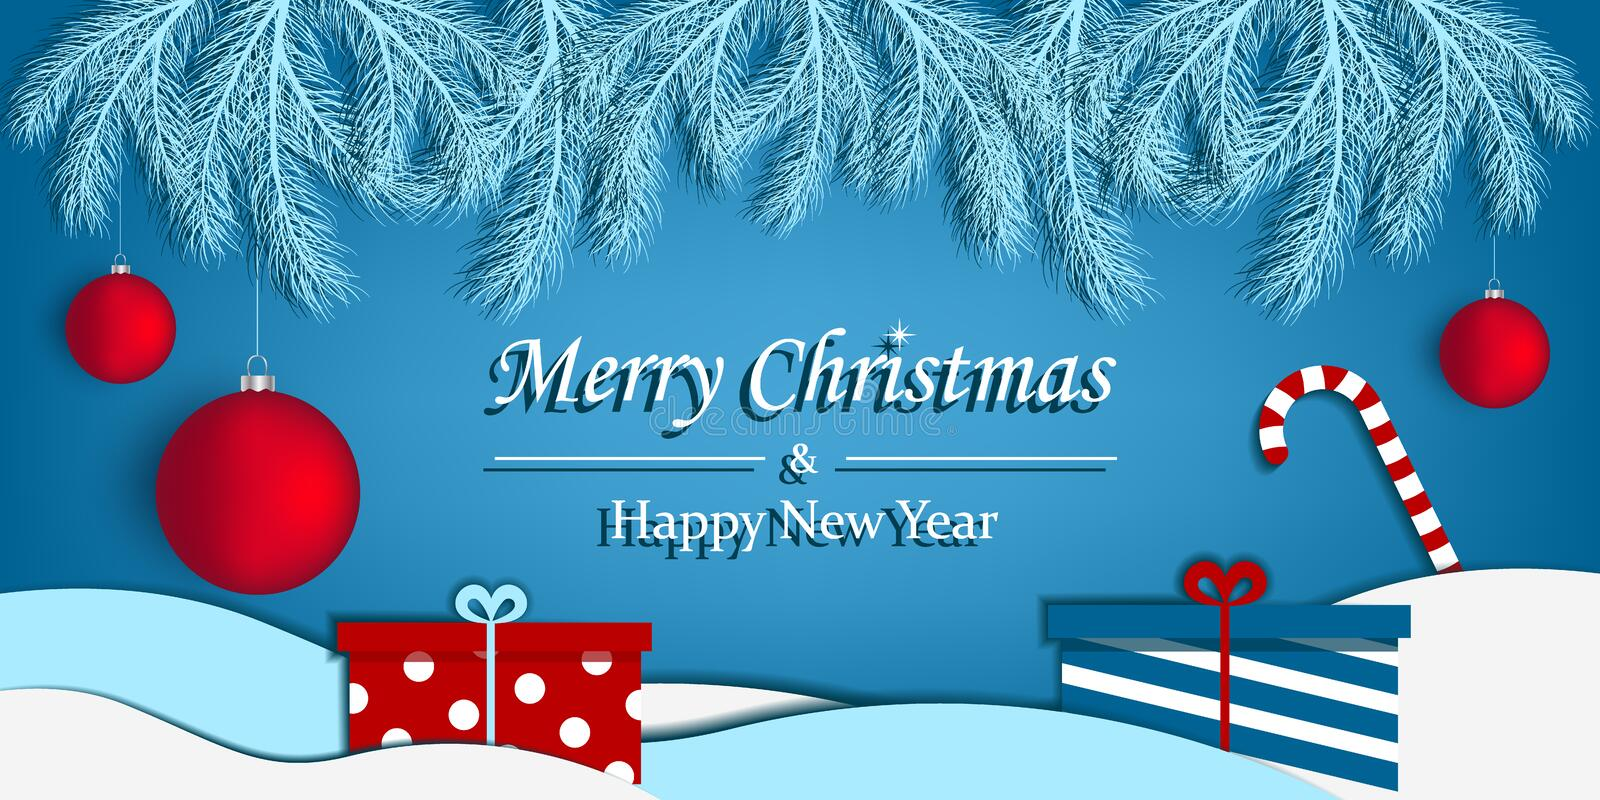 Merry Christmas and Happy New Year greeting card. Abstract background. vector illustration